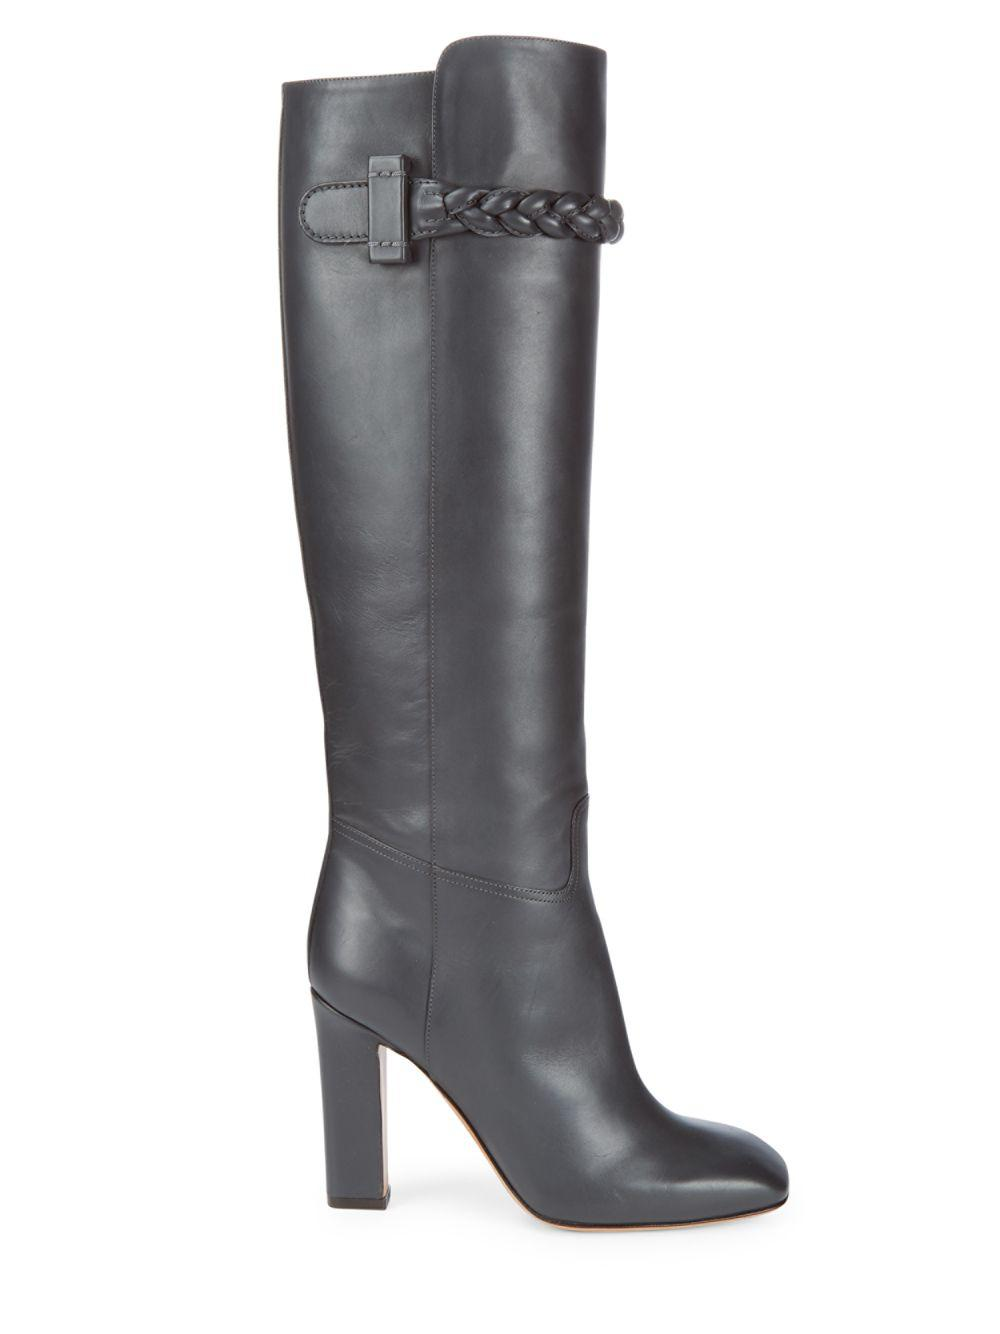 Valentino Patent Leather Square-Toe Boots sale best place 9jc3ZS